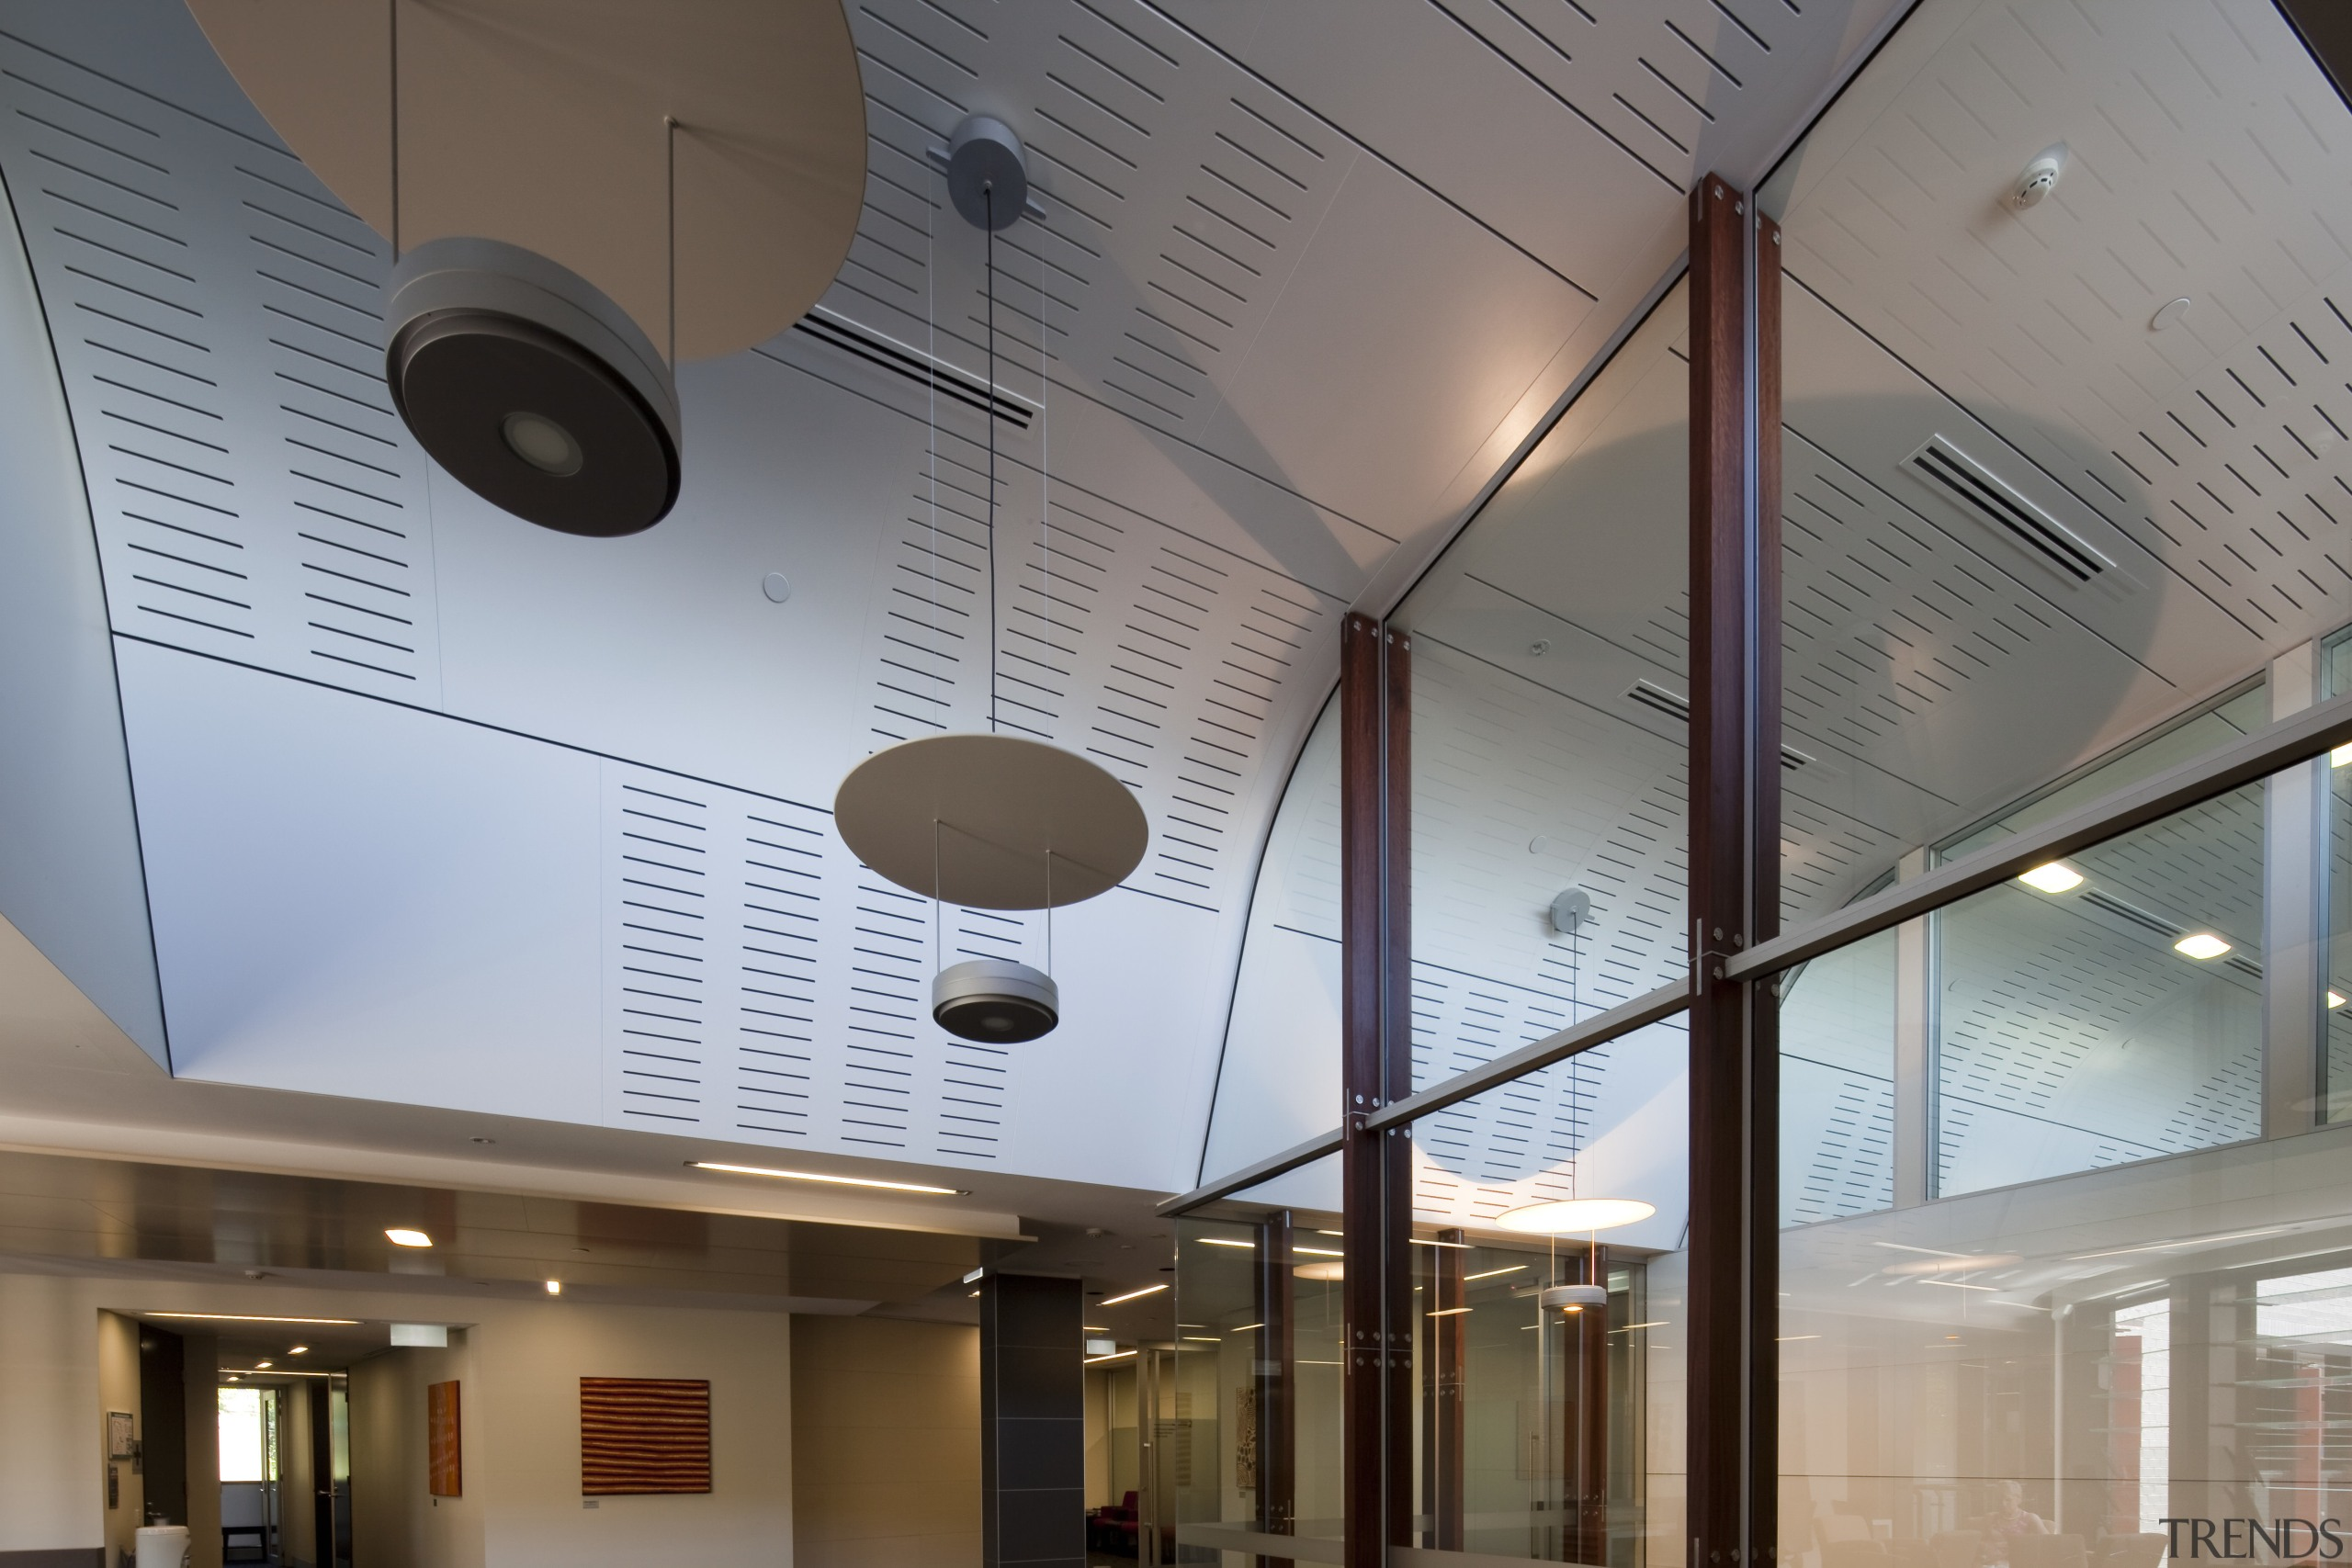 Interior view of the Poshe Centre which features architecture, ceiling, daylighting, glass, gray